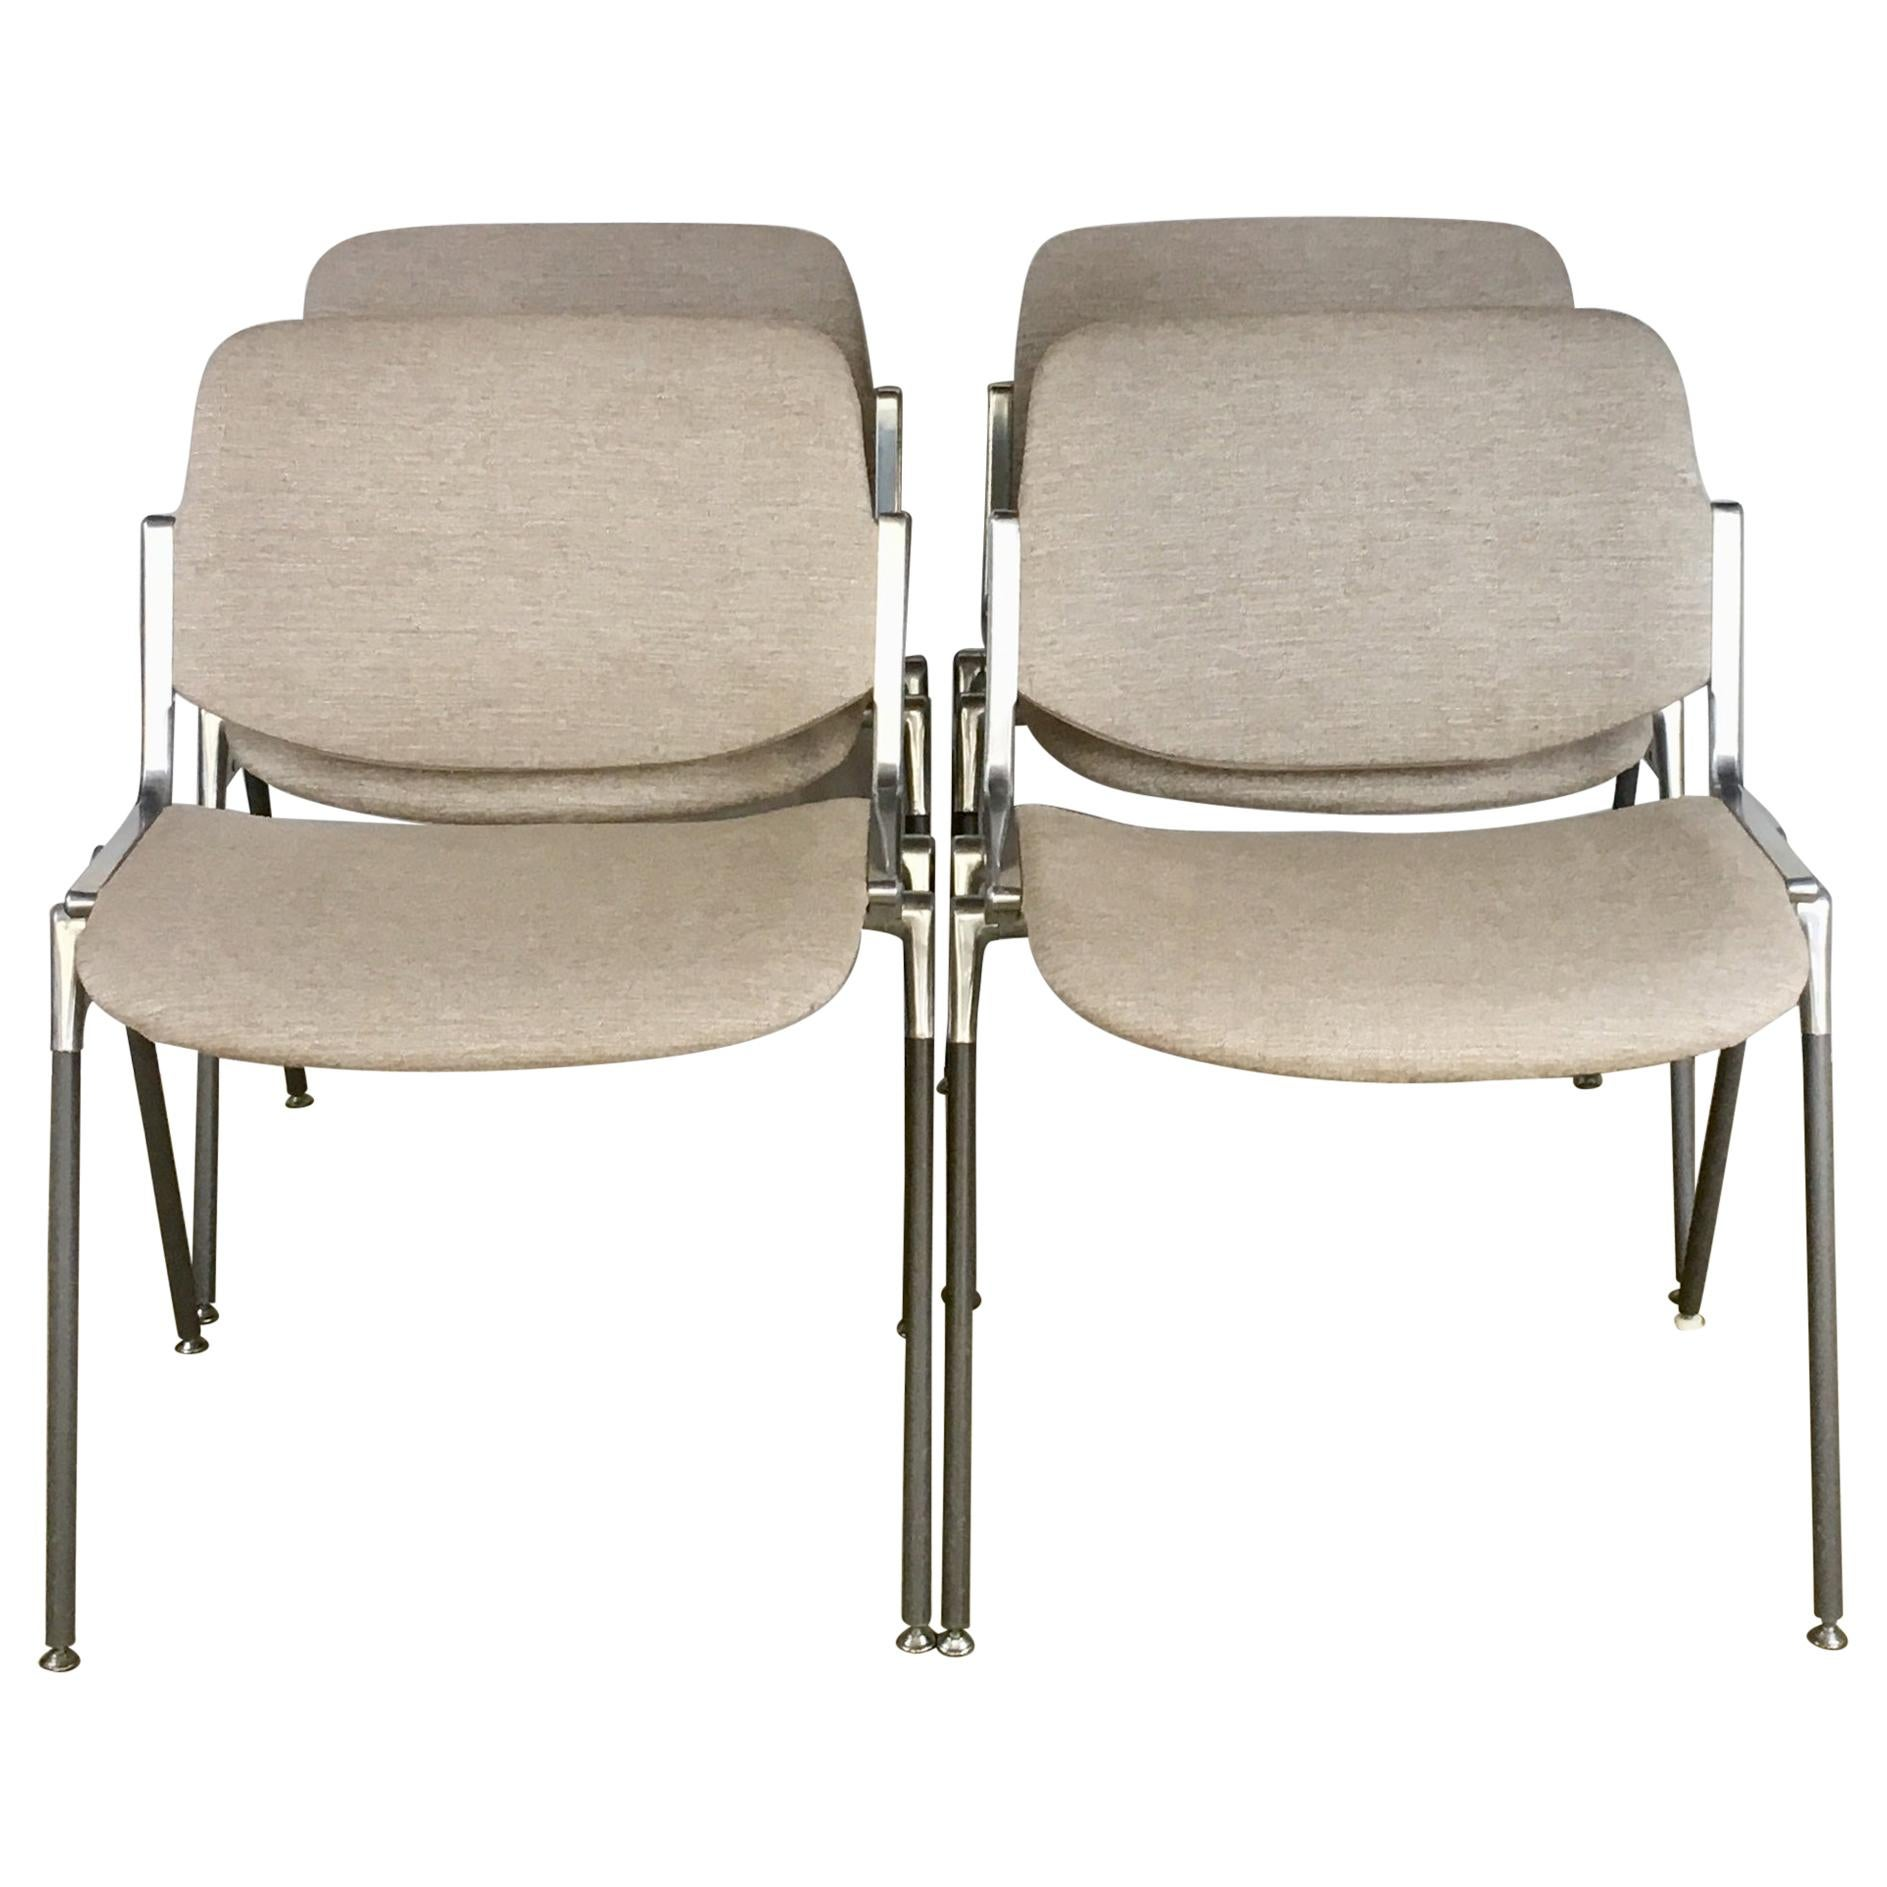 Set of 4 Giancarlo Piretti Stackable Chairs for Castelli, 1960s